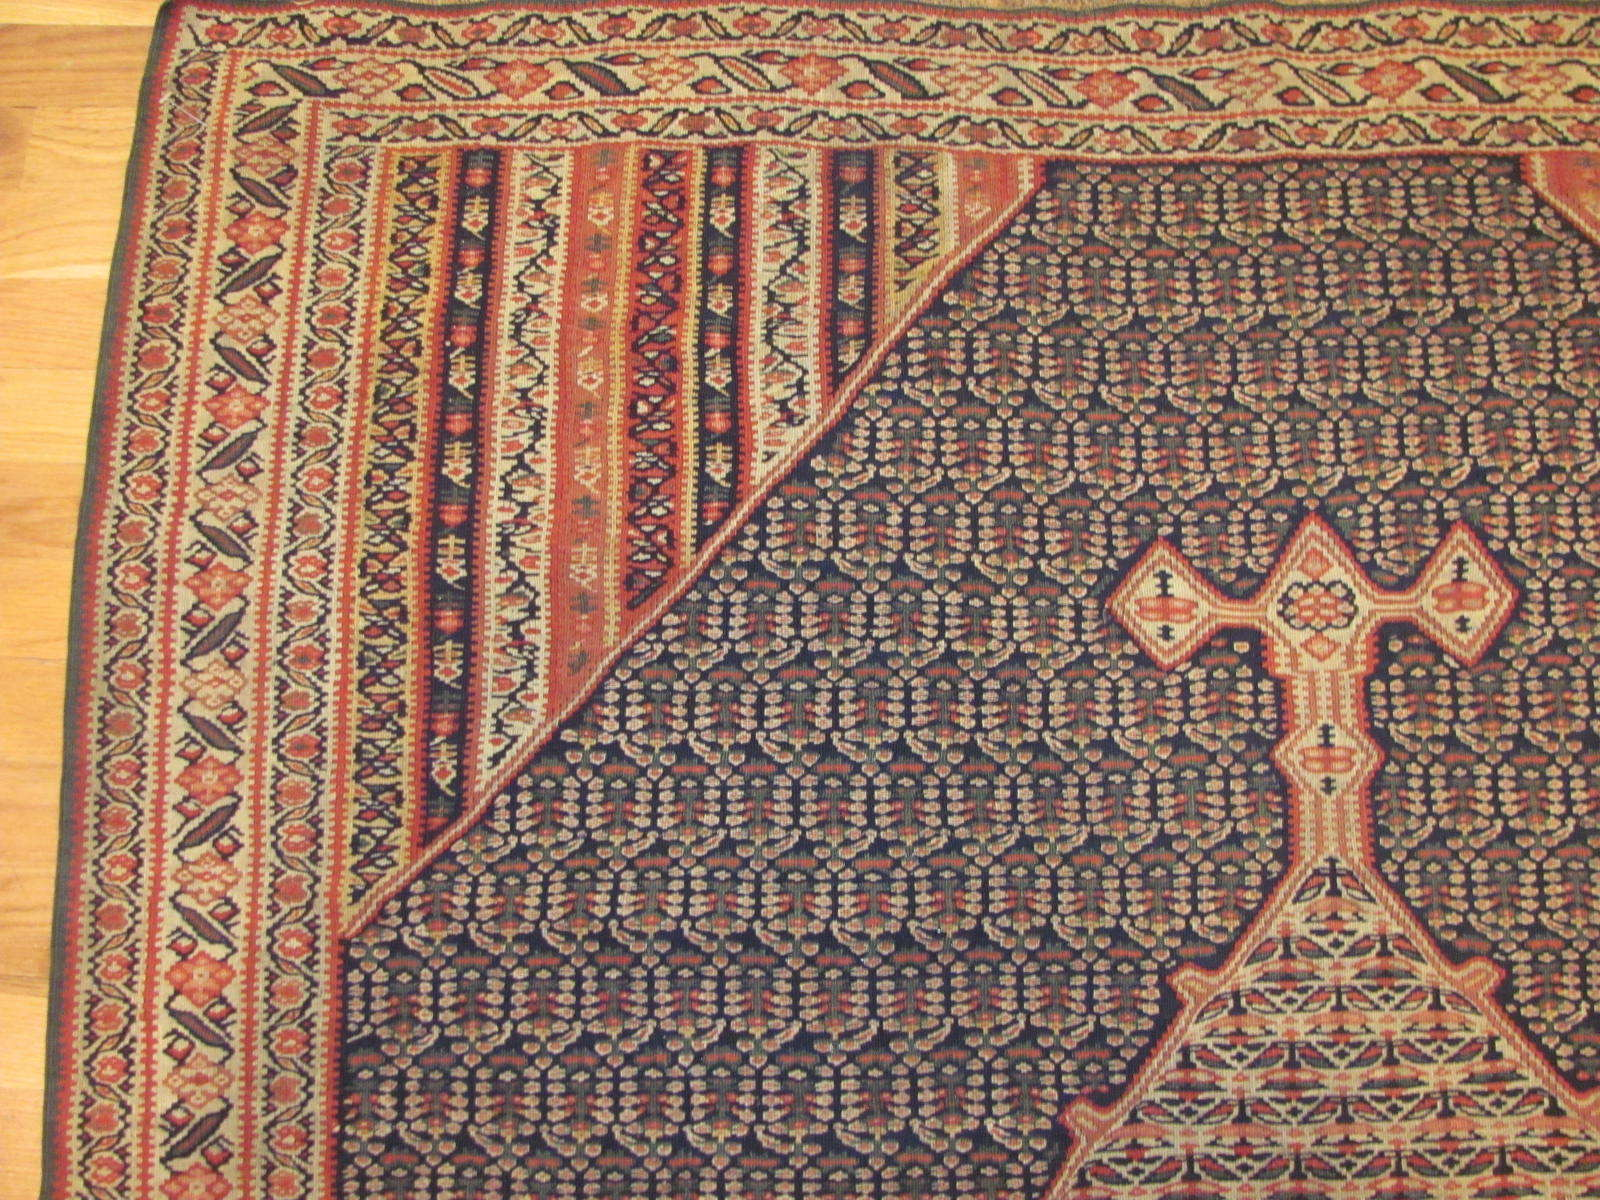 24874 antique persian senneh kilim rug 4,4x6,11-2